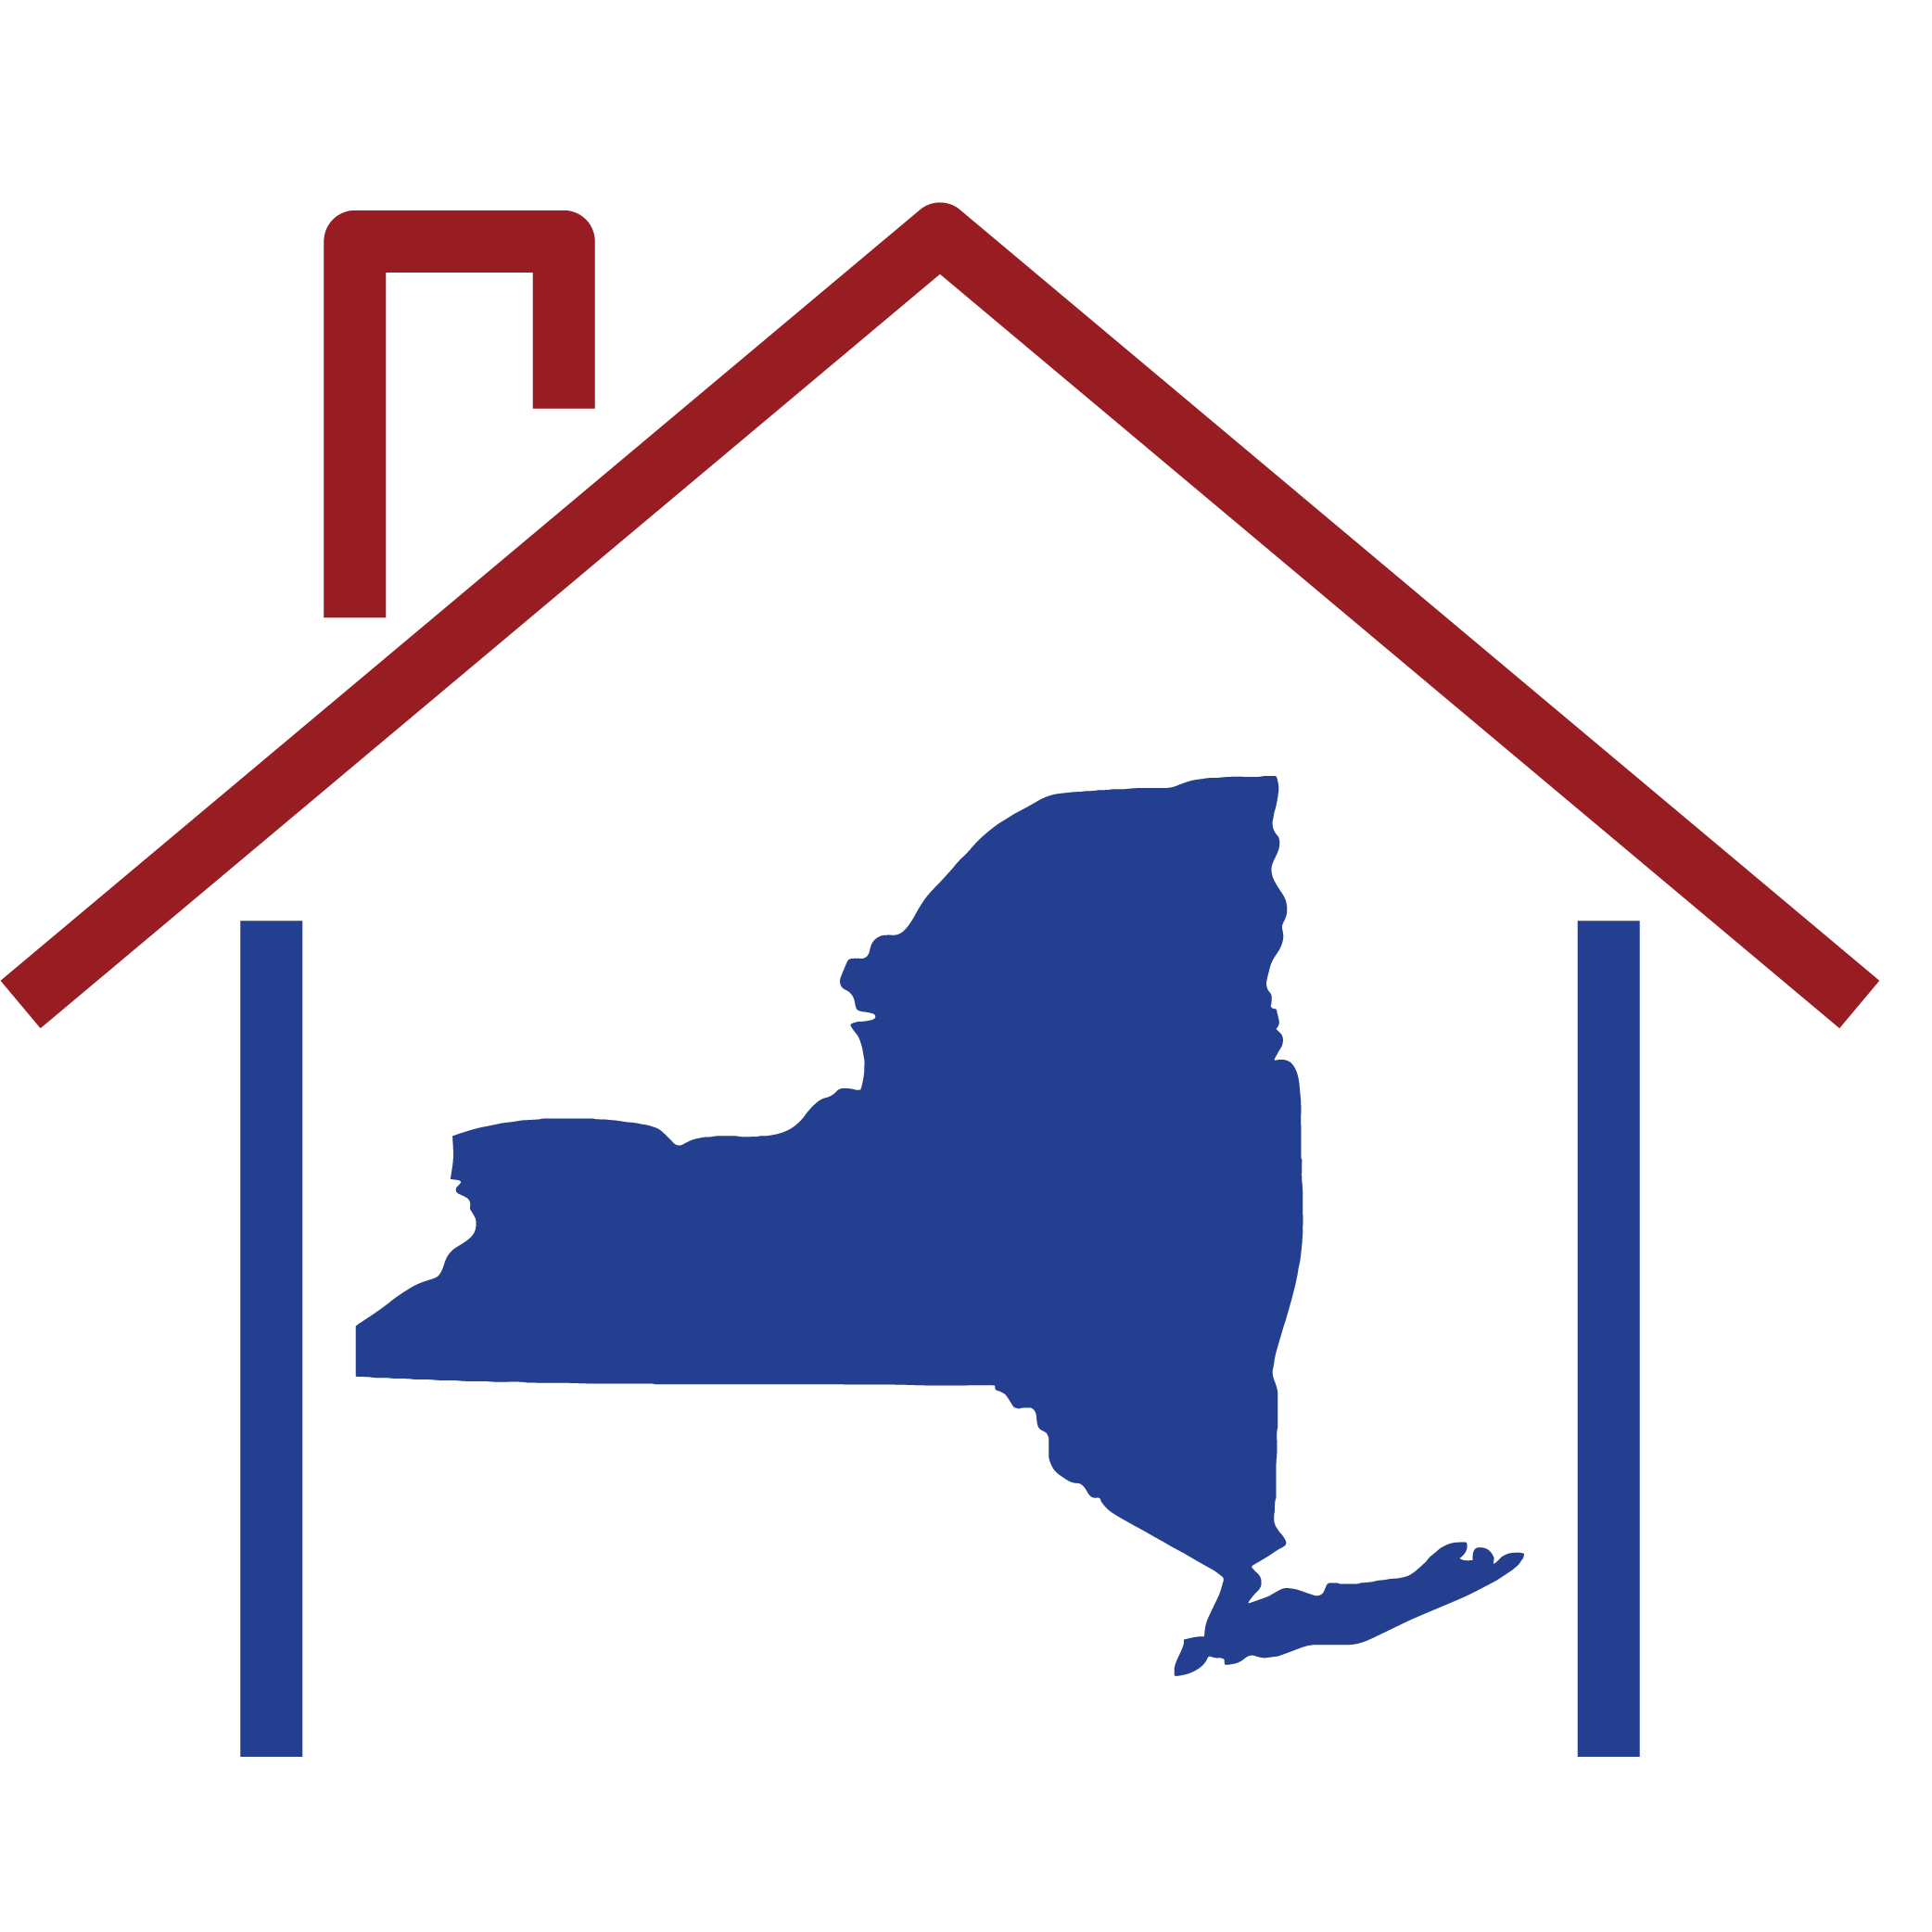 New York state shape inside a house structure.